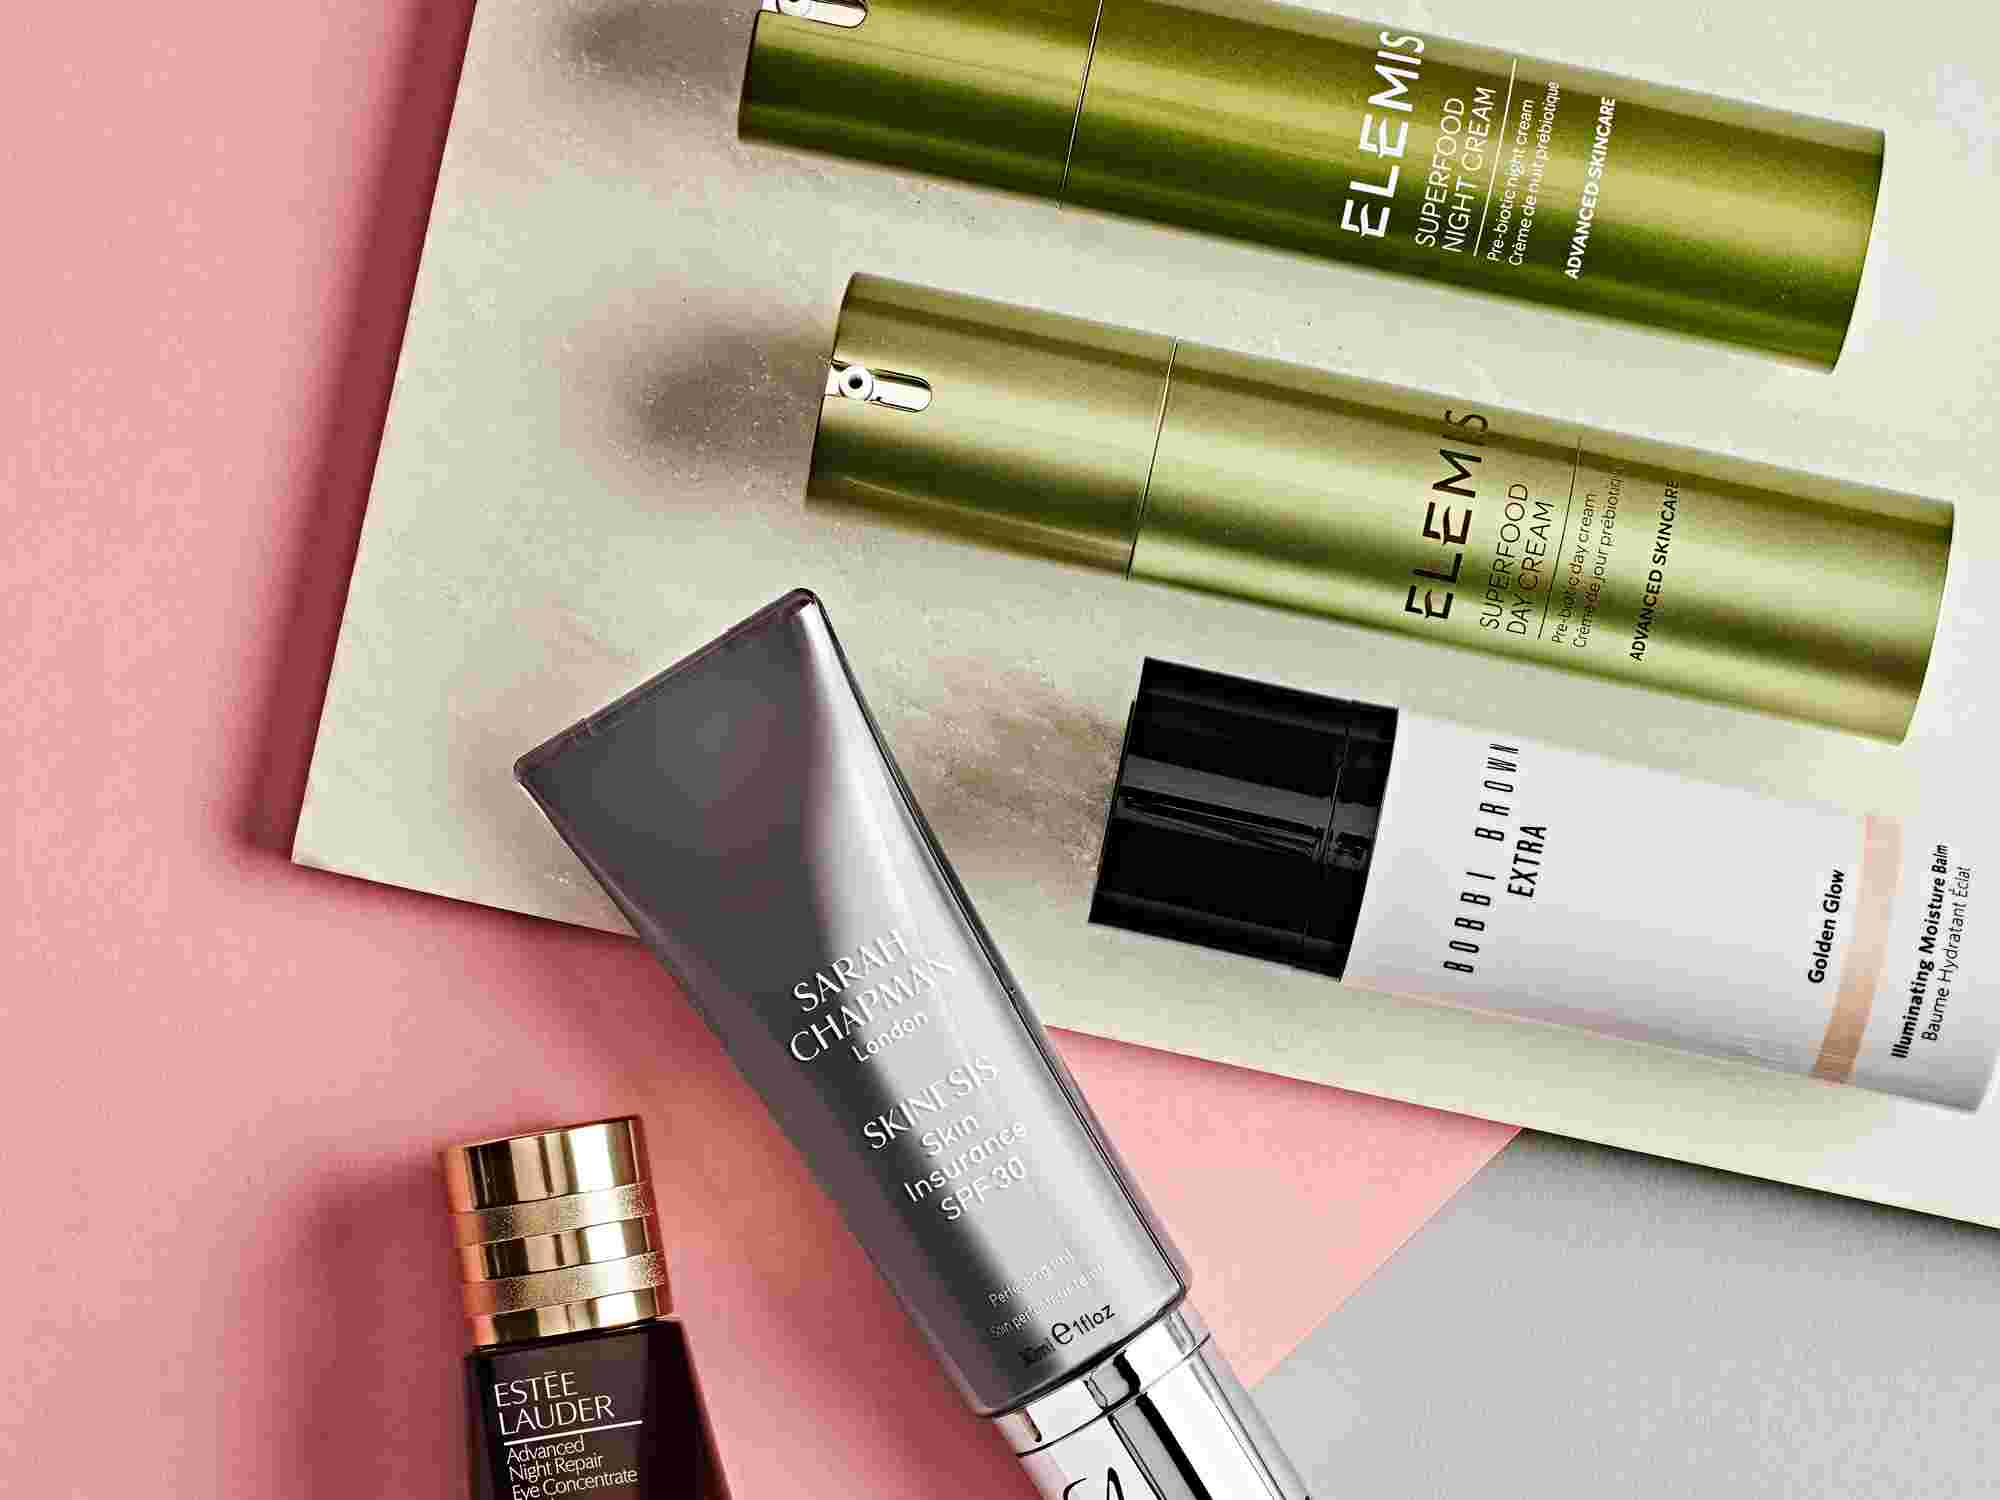 The post-winter skincare tips to spring clean your complexion